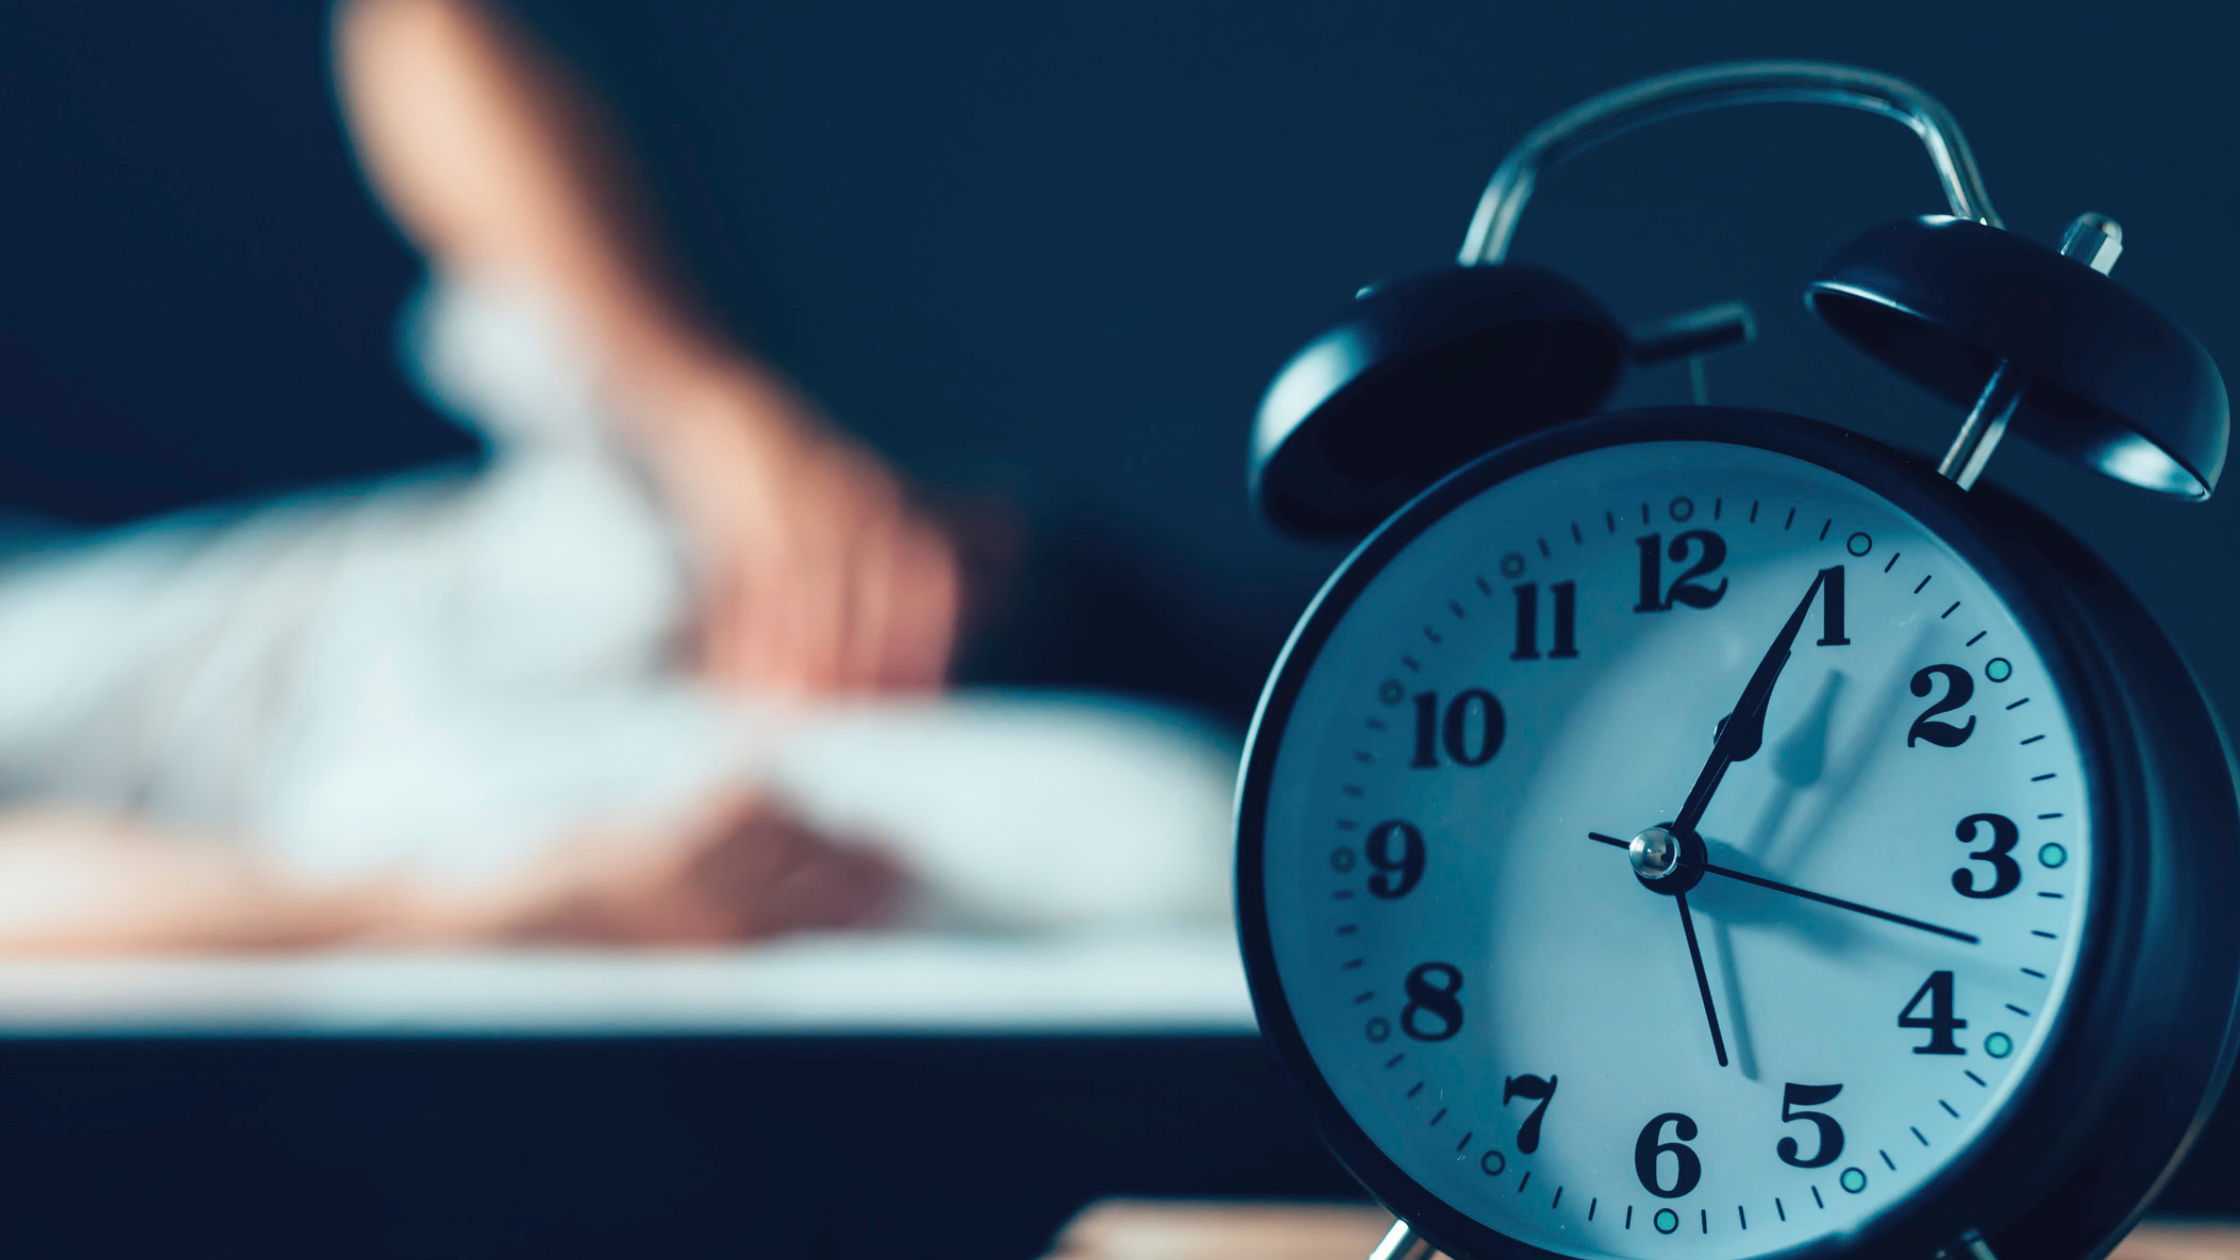 Connectivity Technology Nightmares That Keep IT Leaders Up at Night